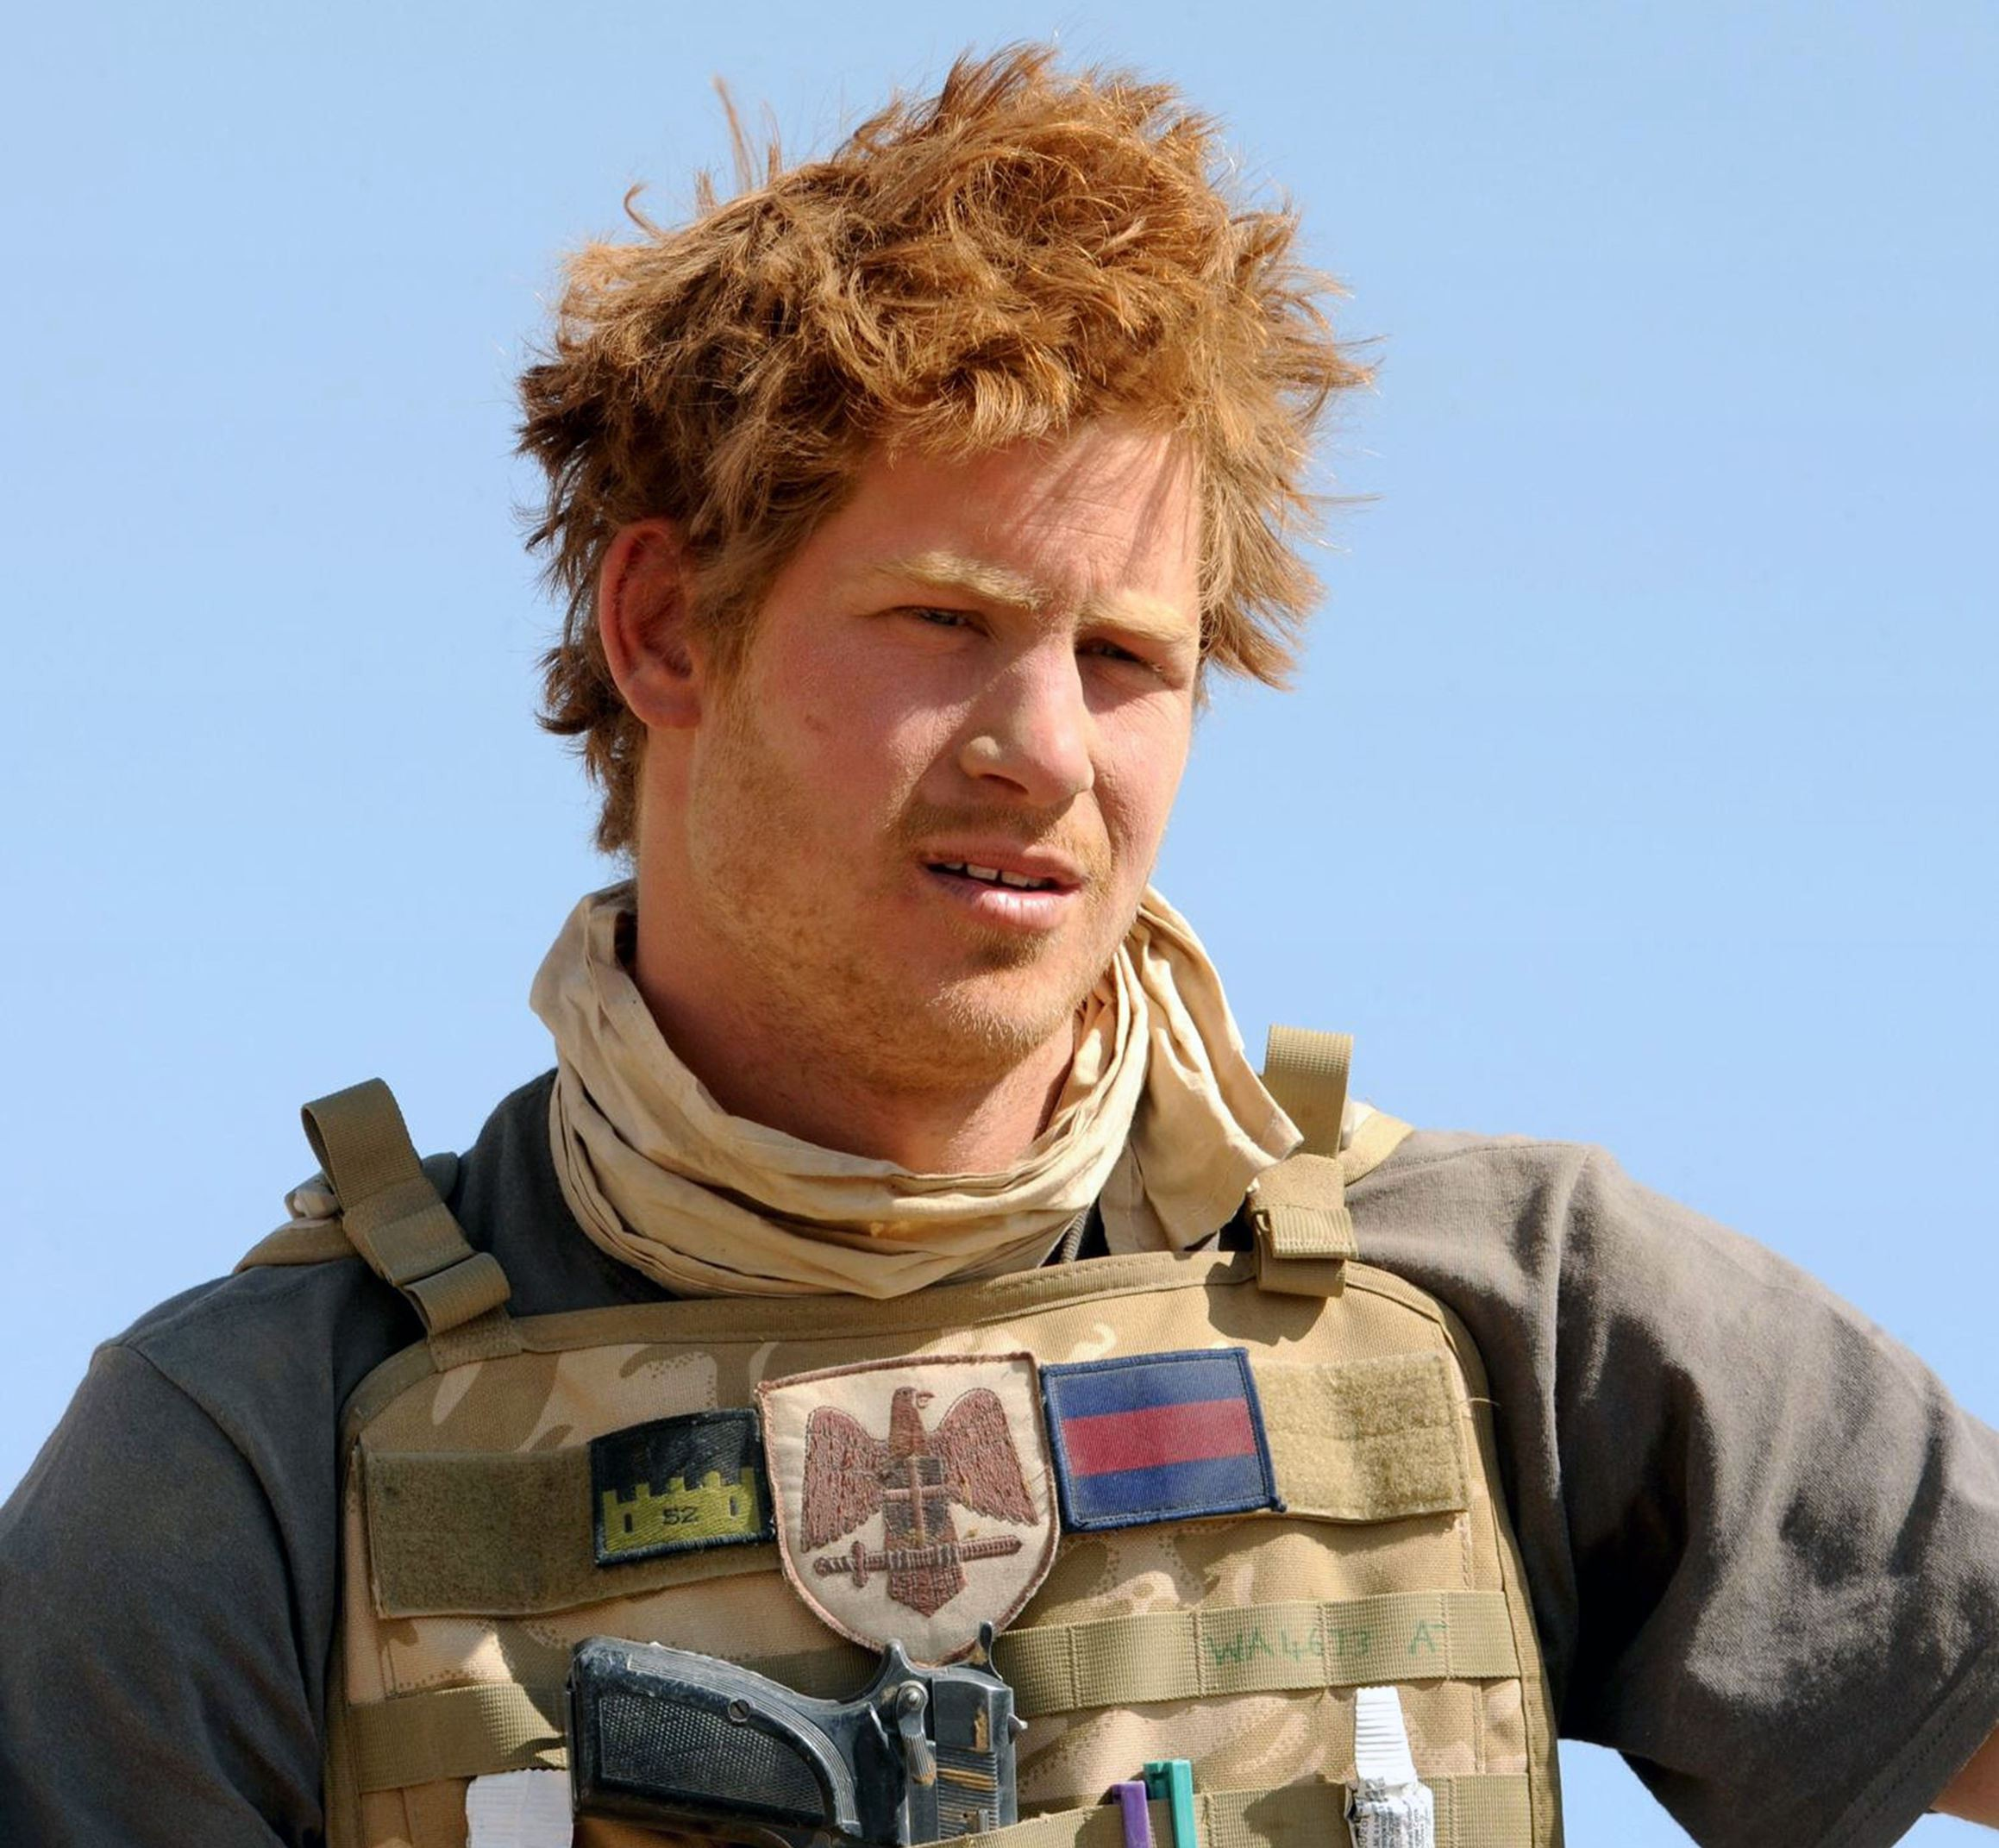 Prince Harry is wrong – bringing back National Service makes no sense